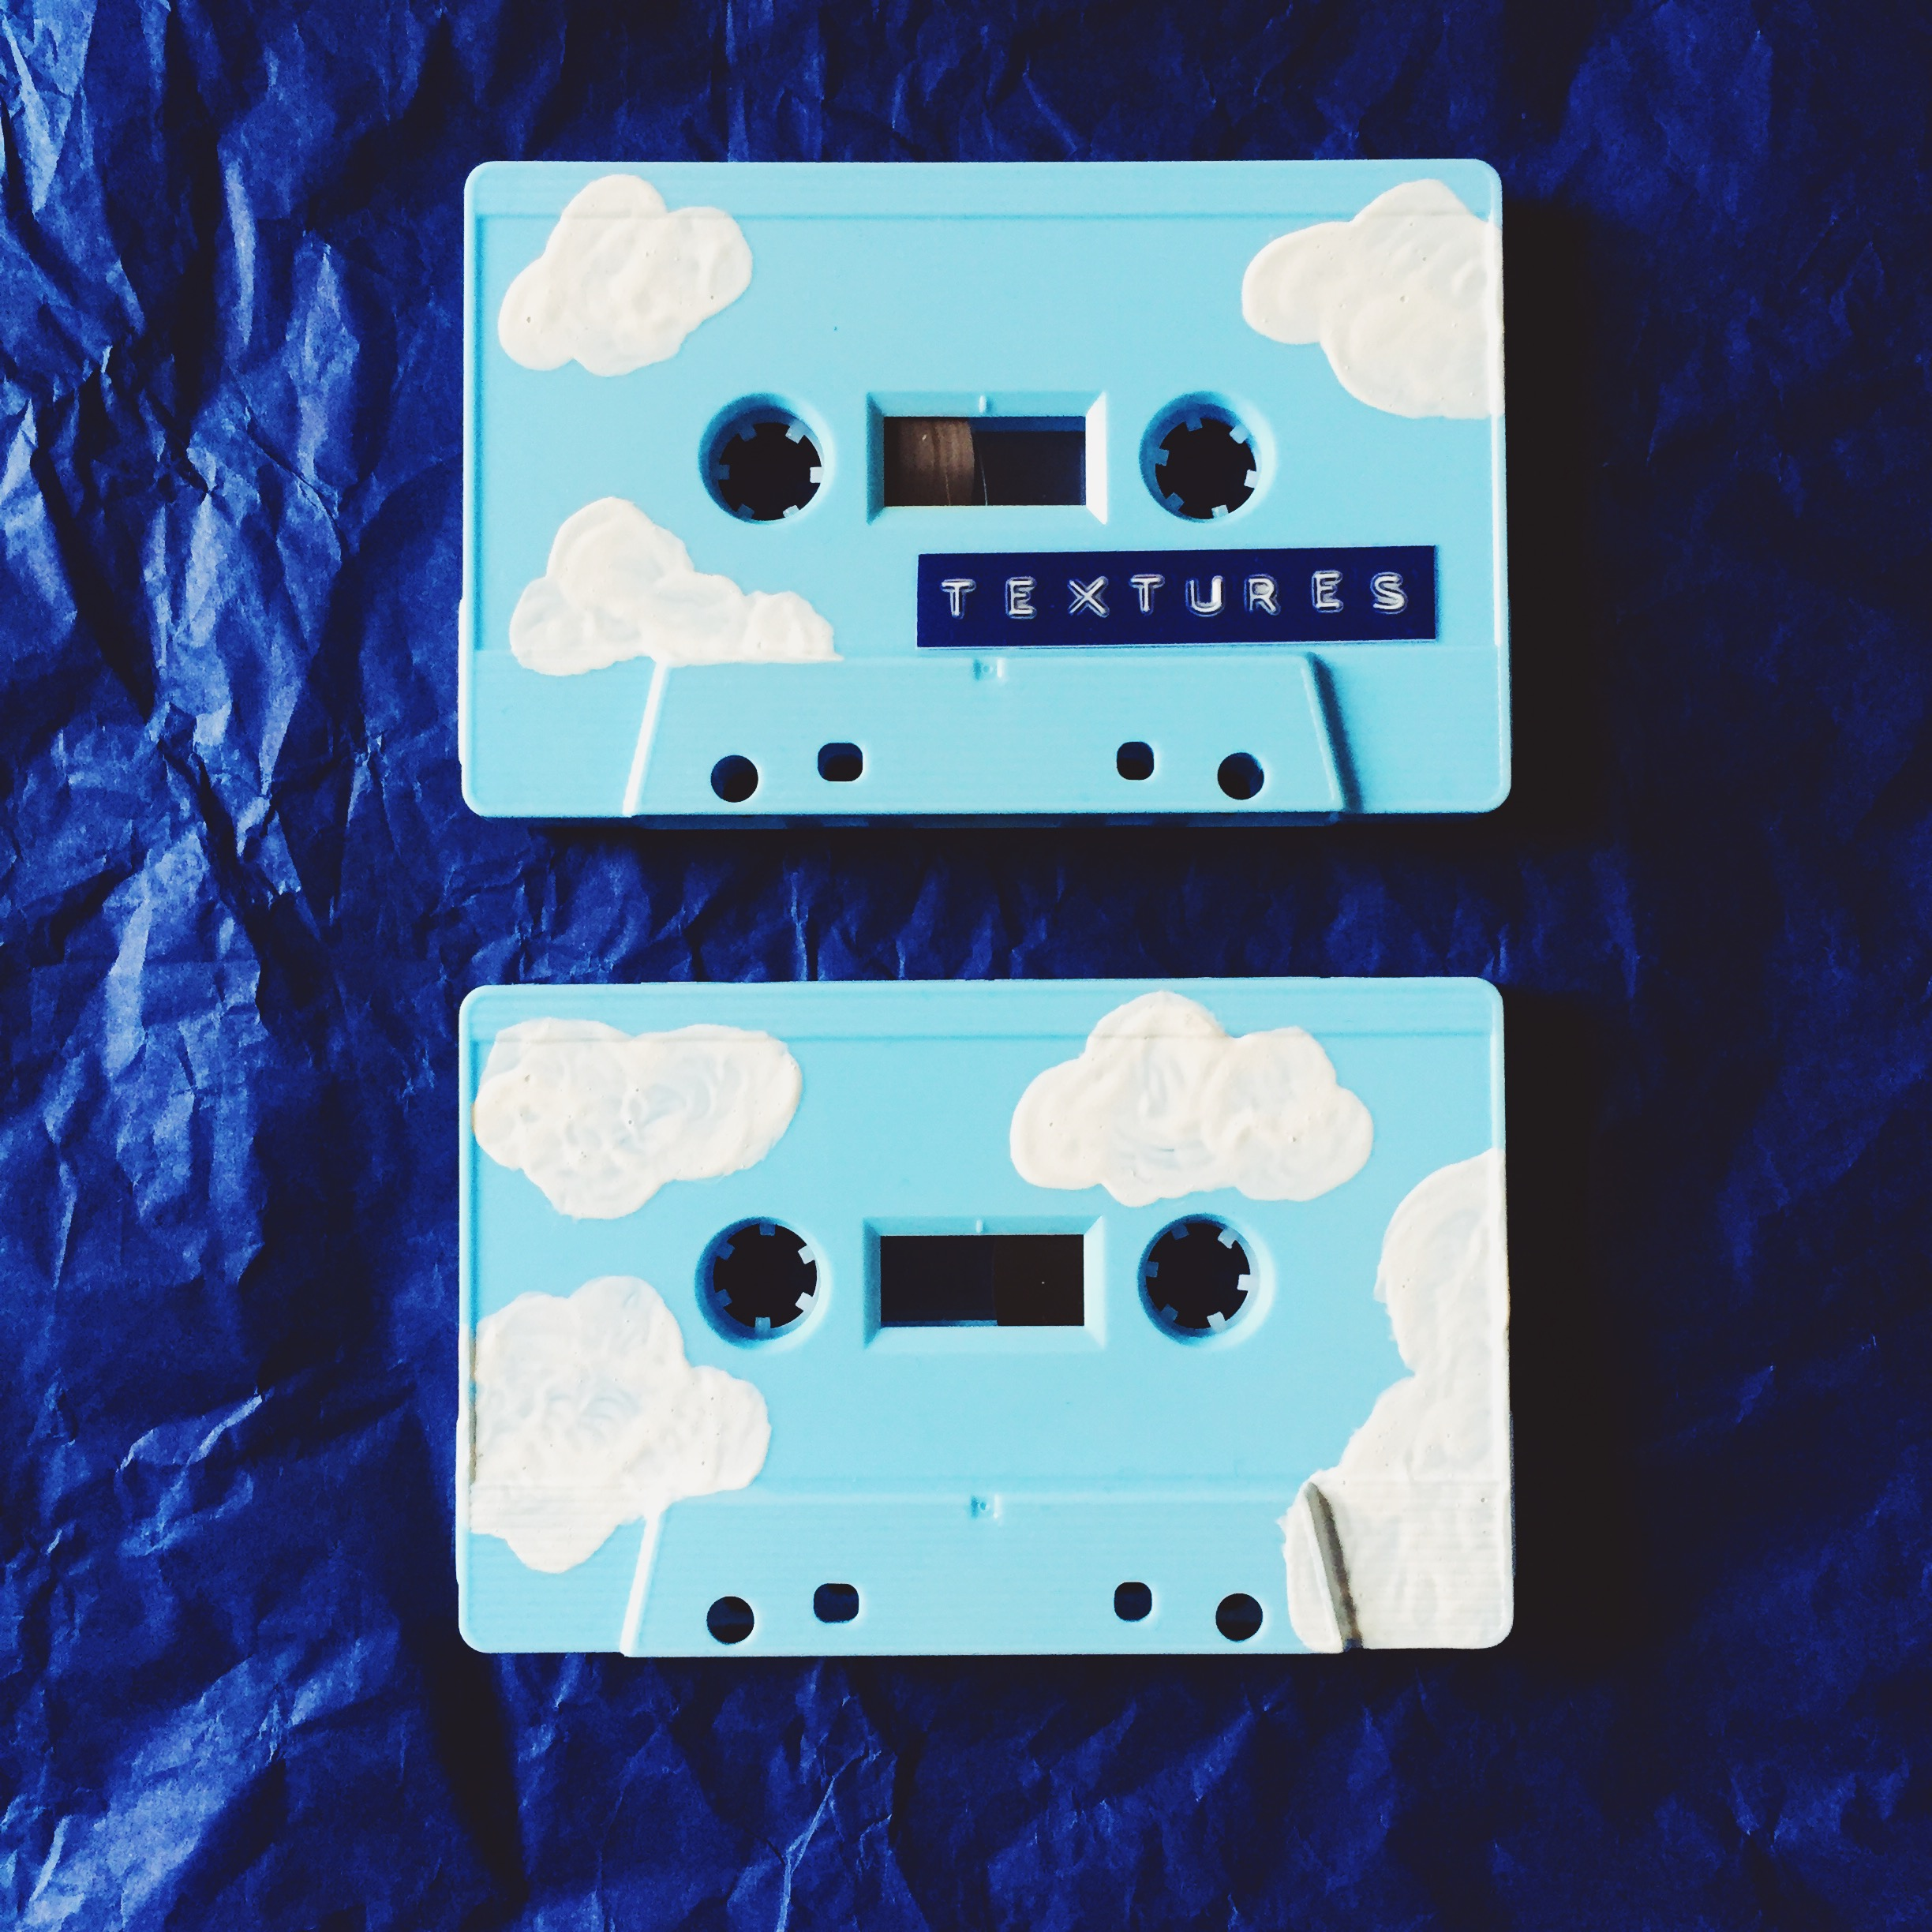 Cyborg See - Cyborg Do - Textures for a Rainy Day cassette